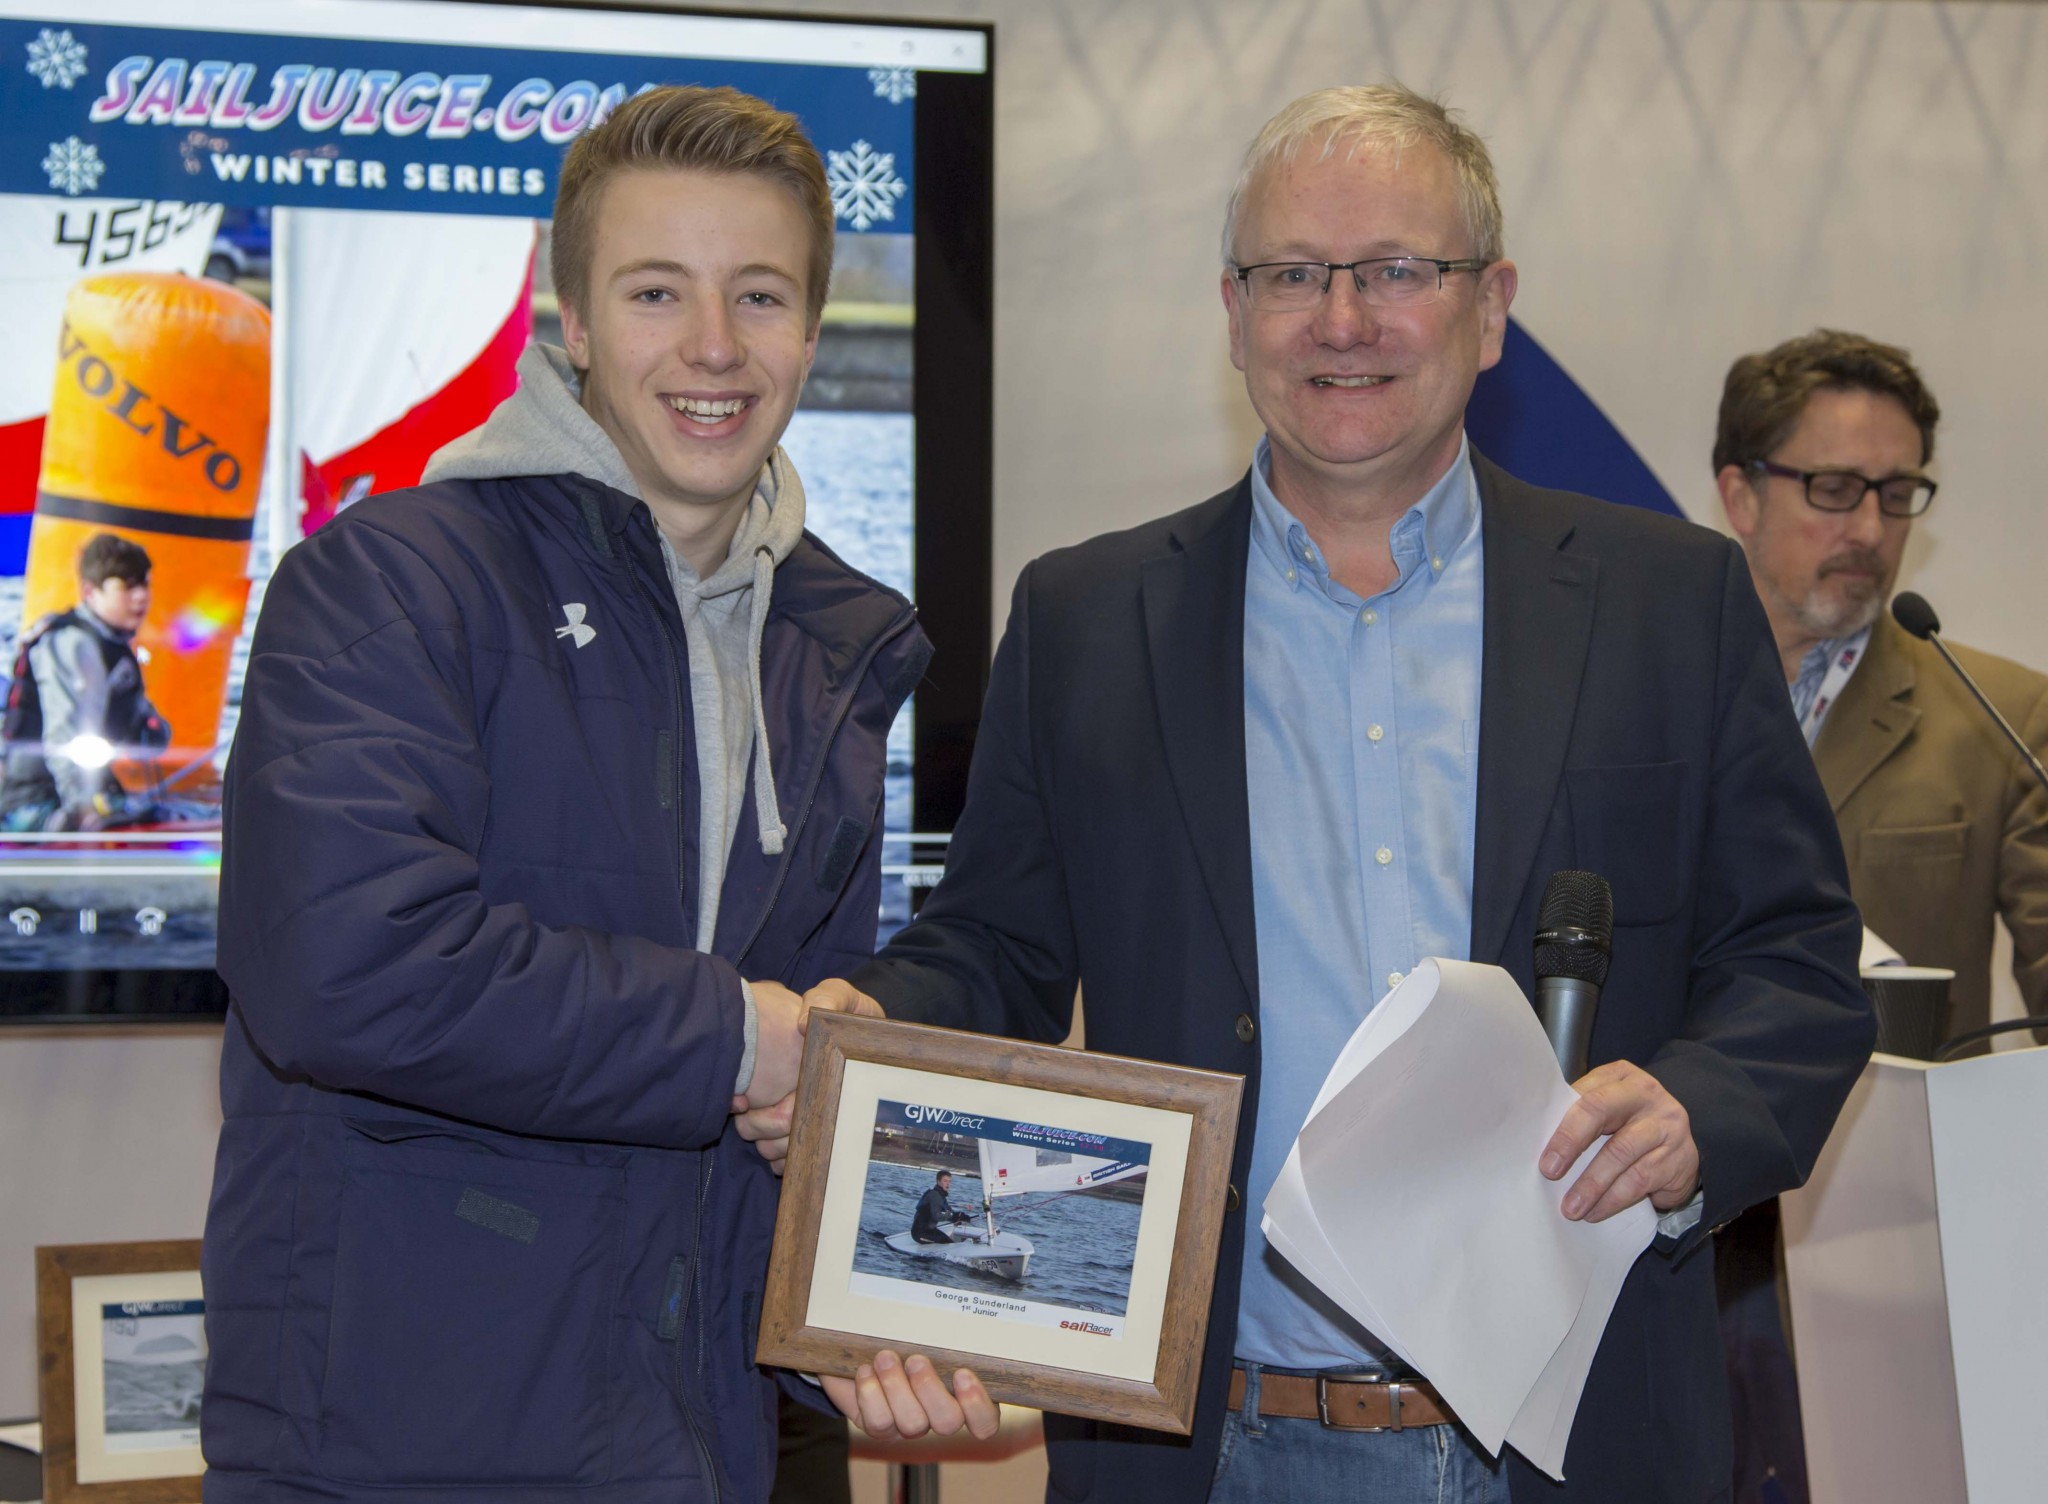 goodwin-crowned-winter-champion-at-dinghy-show